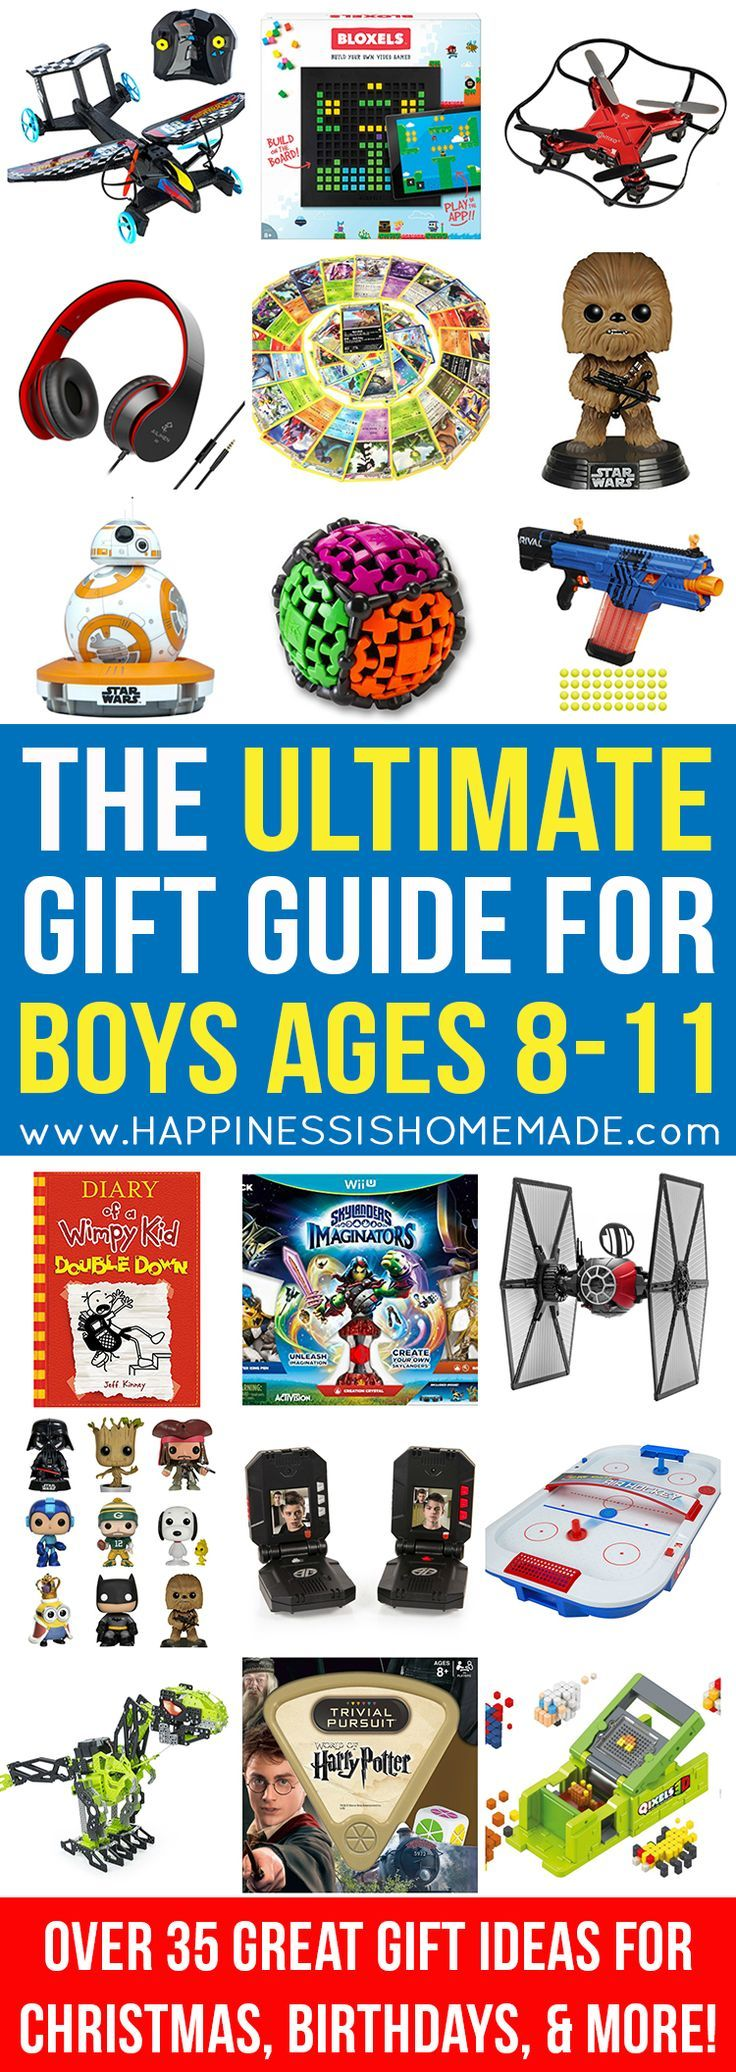 This Is For Billy My Best Friend With Alot In Common With Me Christmas Gifts For Boys Best Gifts For Boys Tween Boy Gifts